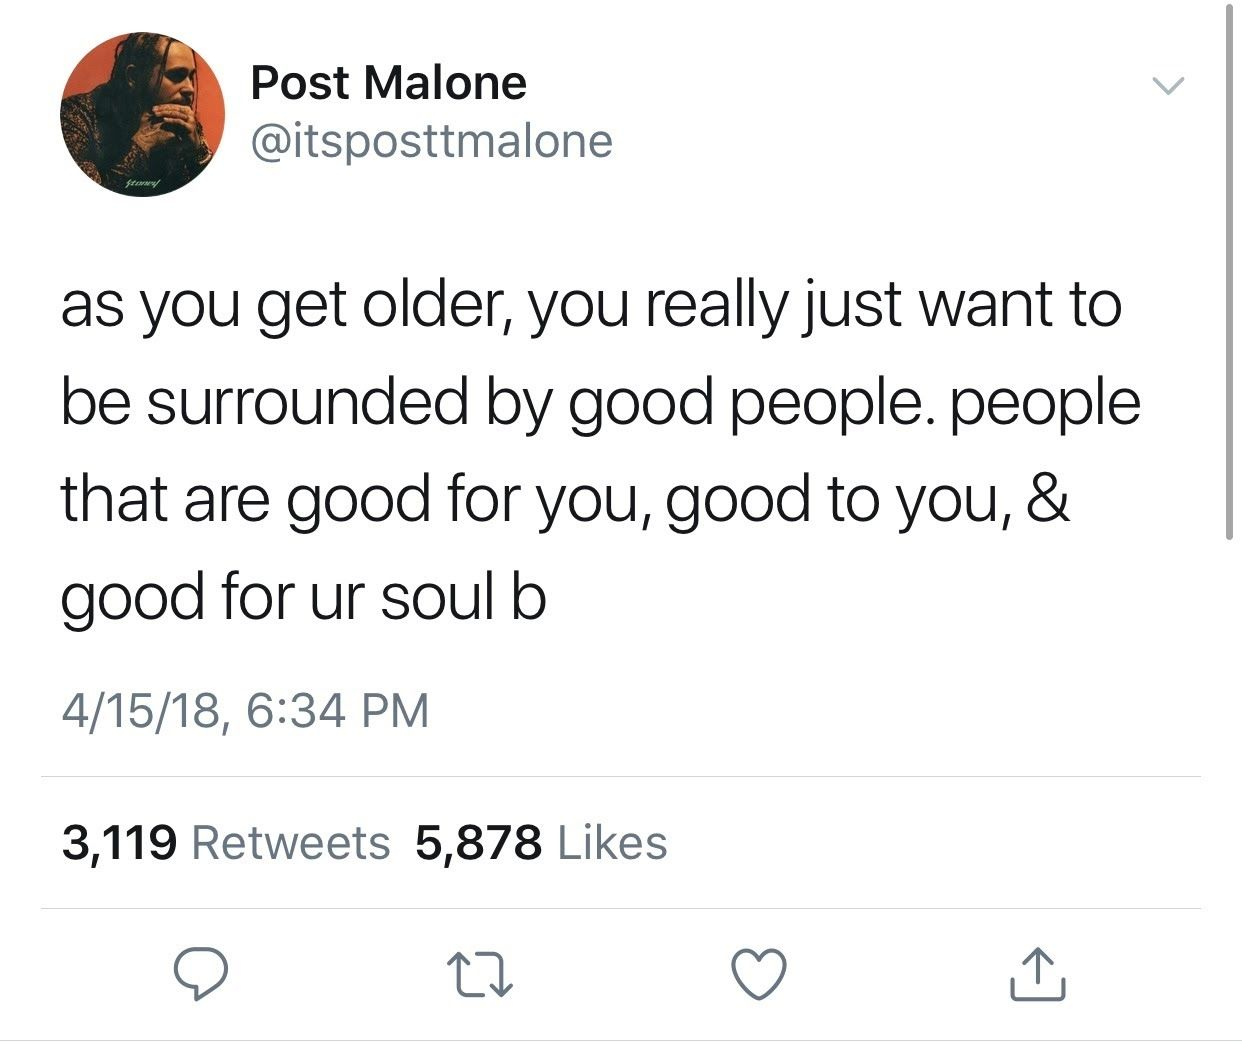 Best Funny Tweets Post Malone's Realest Tweets Post Malone's Realest Tweets | Her Campus 11